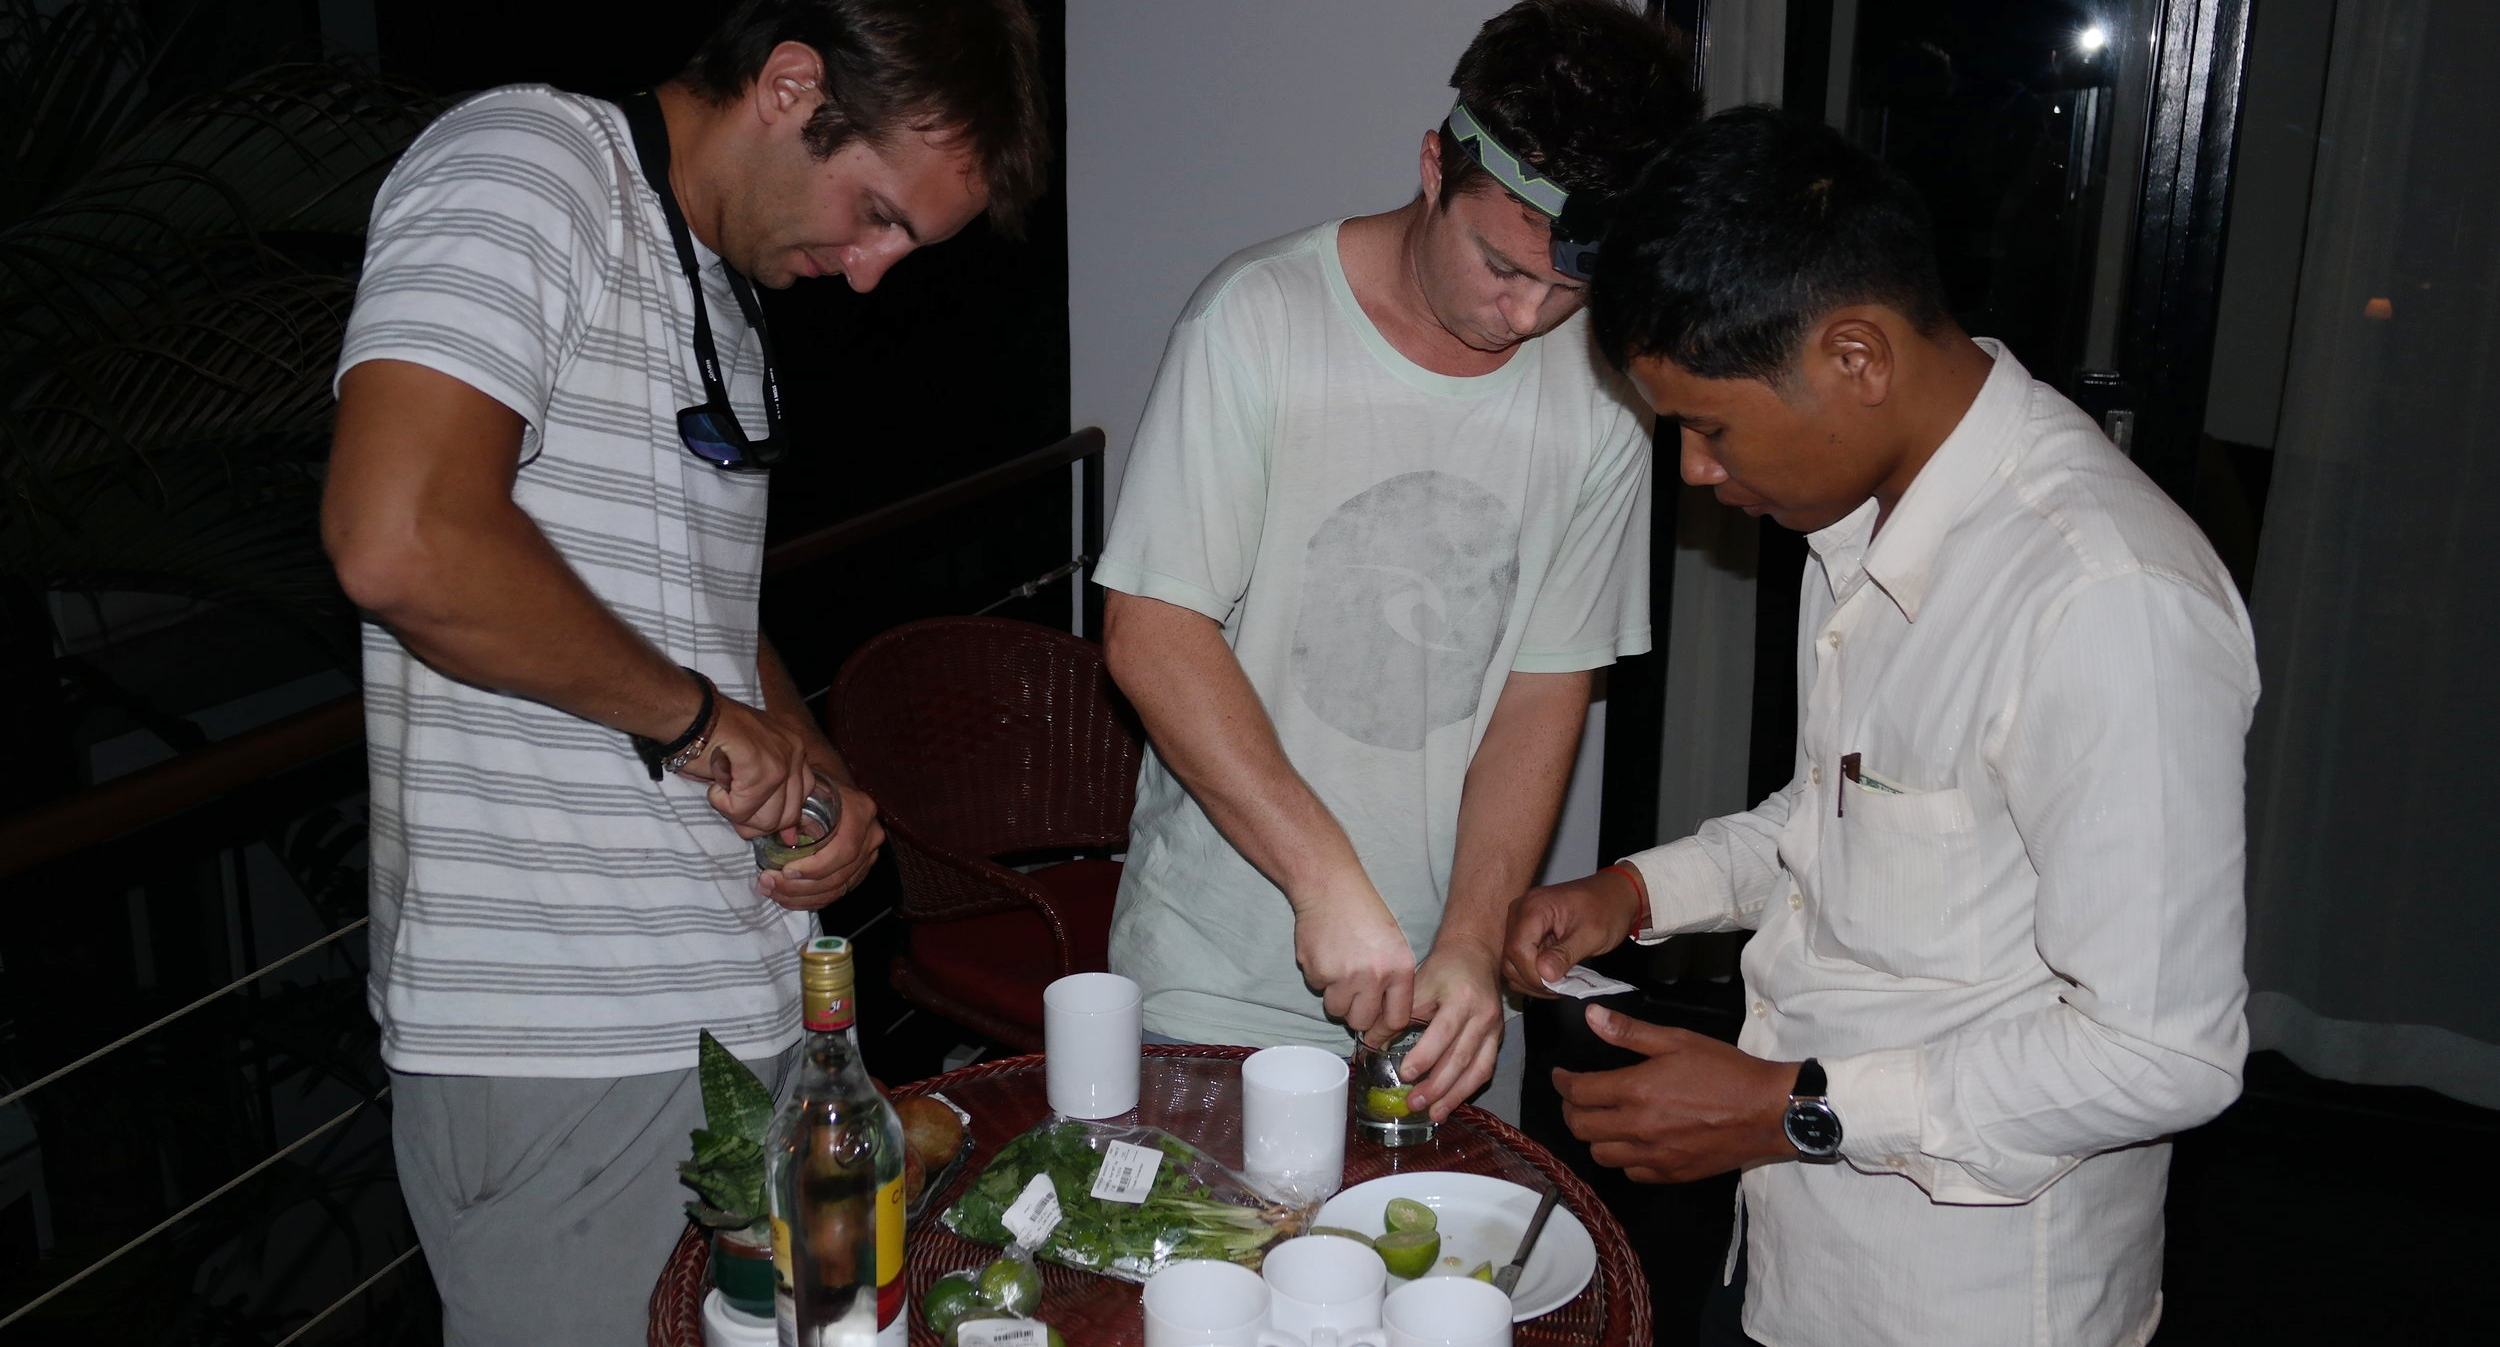 You'll have more fun with a local anyways.  After chatting with our Tuk Tuk driver on the way back from Angkor Wat we invited him to the hotel where he taught us how to make local cocktails.  The next morning he gave us the best